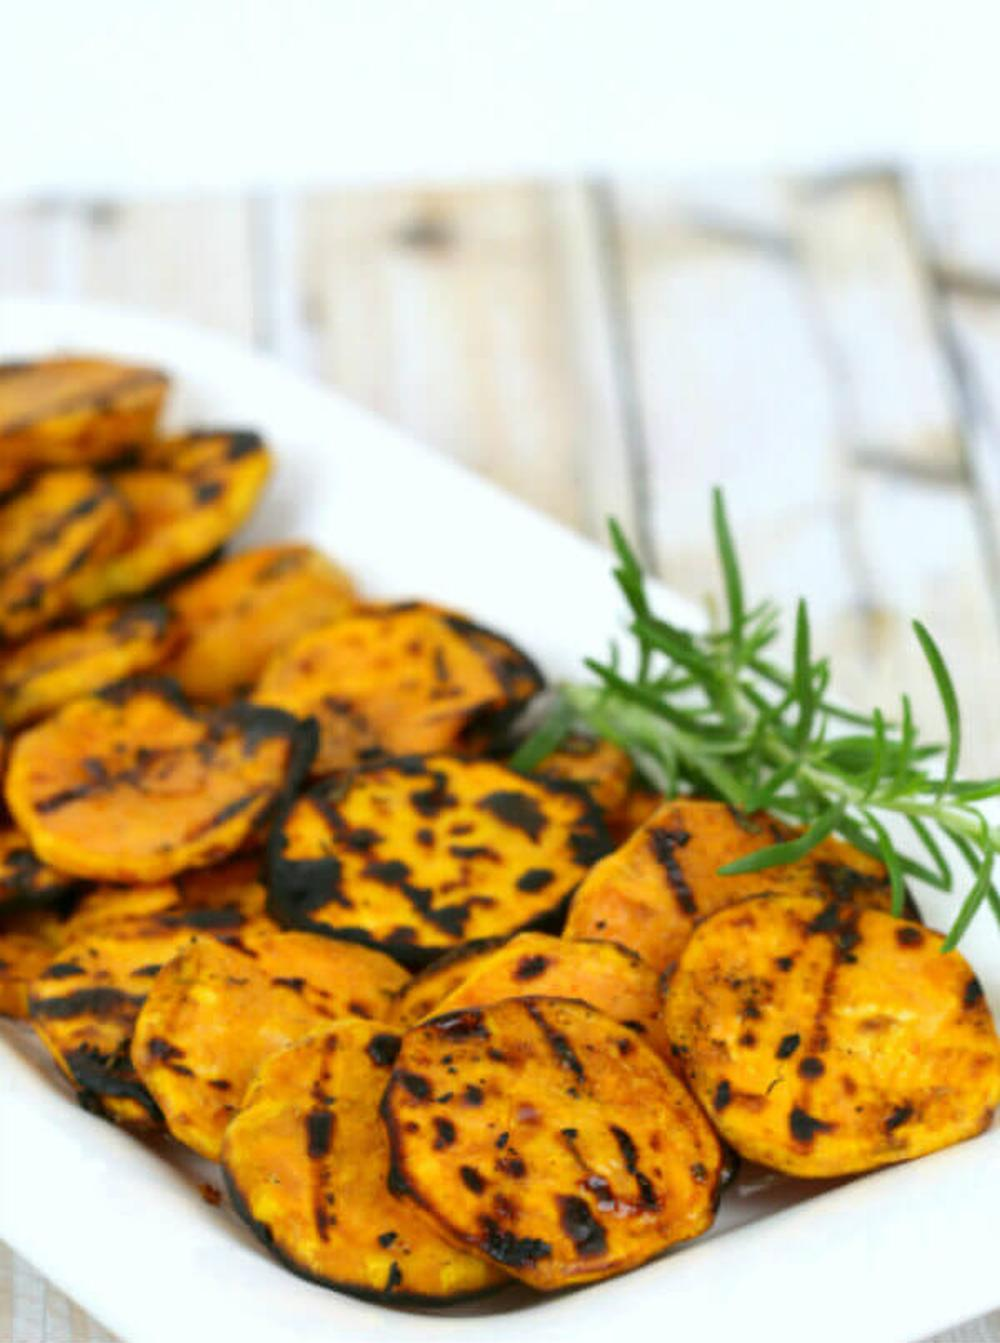 Grilled sweet potatoes with rosemary thanksgiving fall appetizers